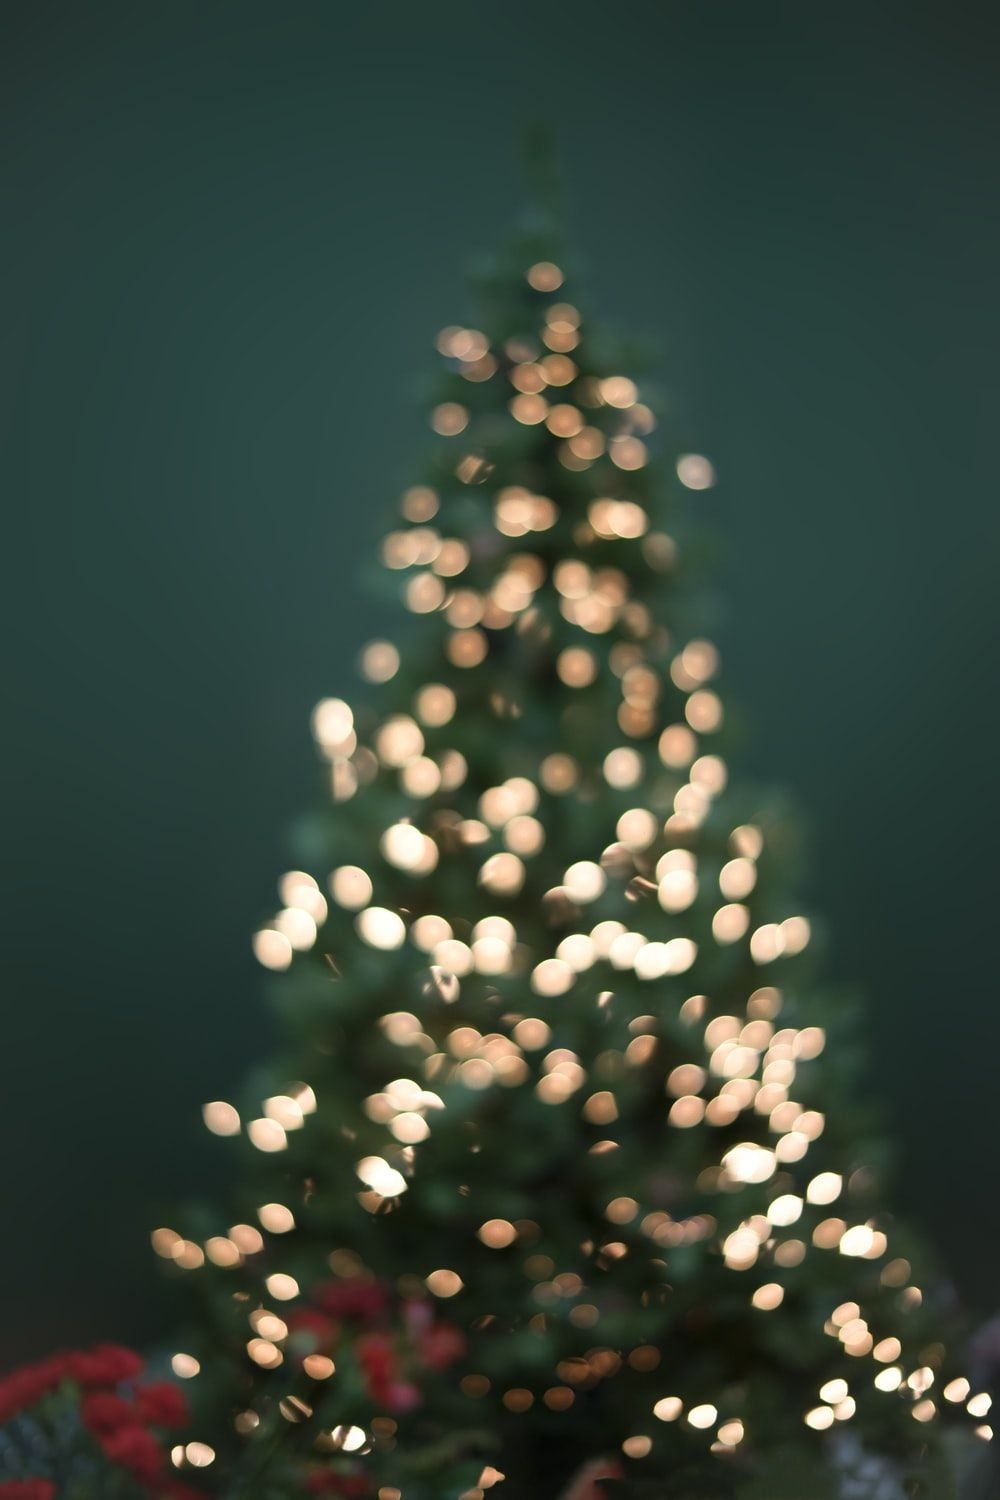 1000x1500 900+ Christmas Tree Images: Download HD Pictures & Photos on ...